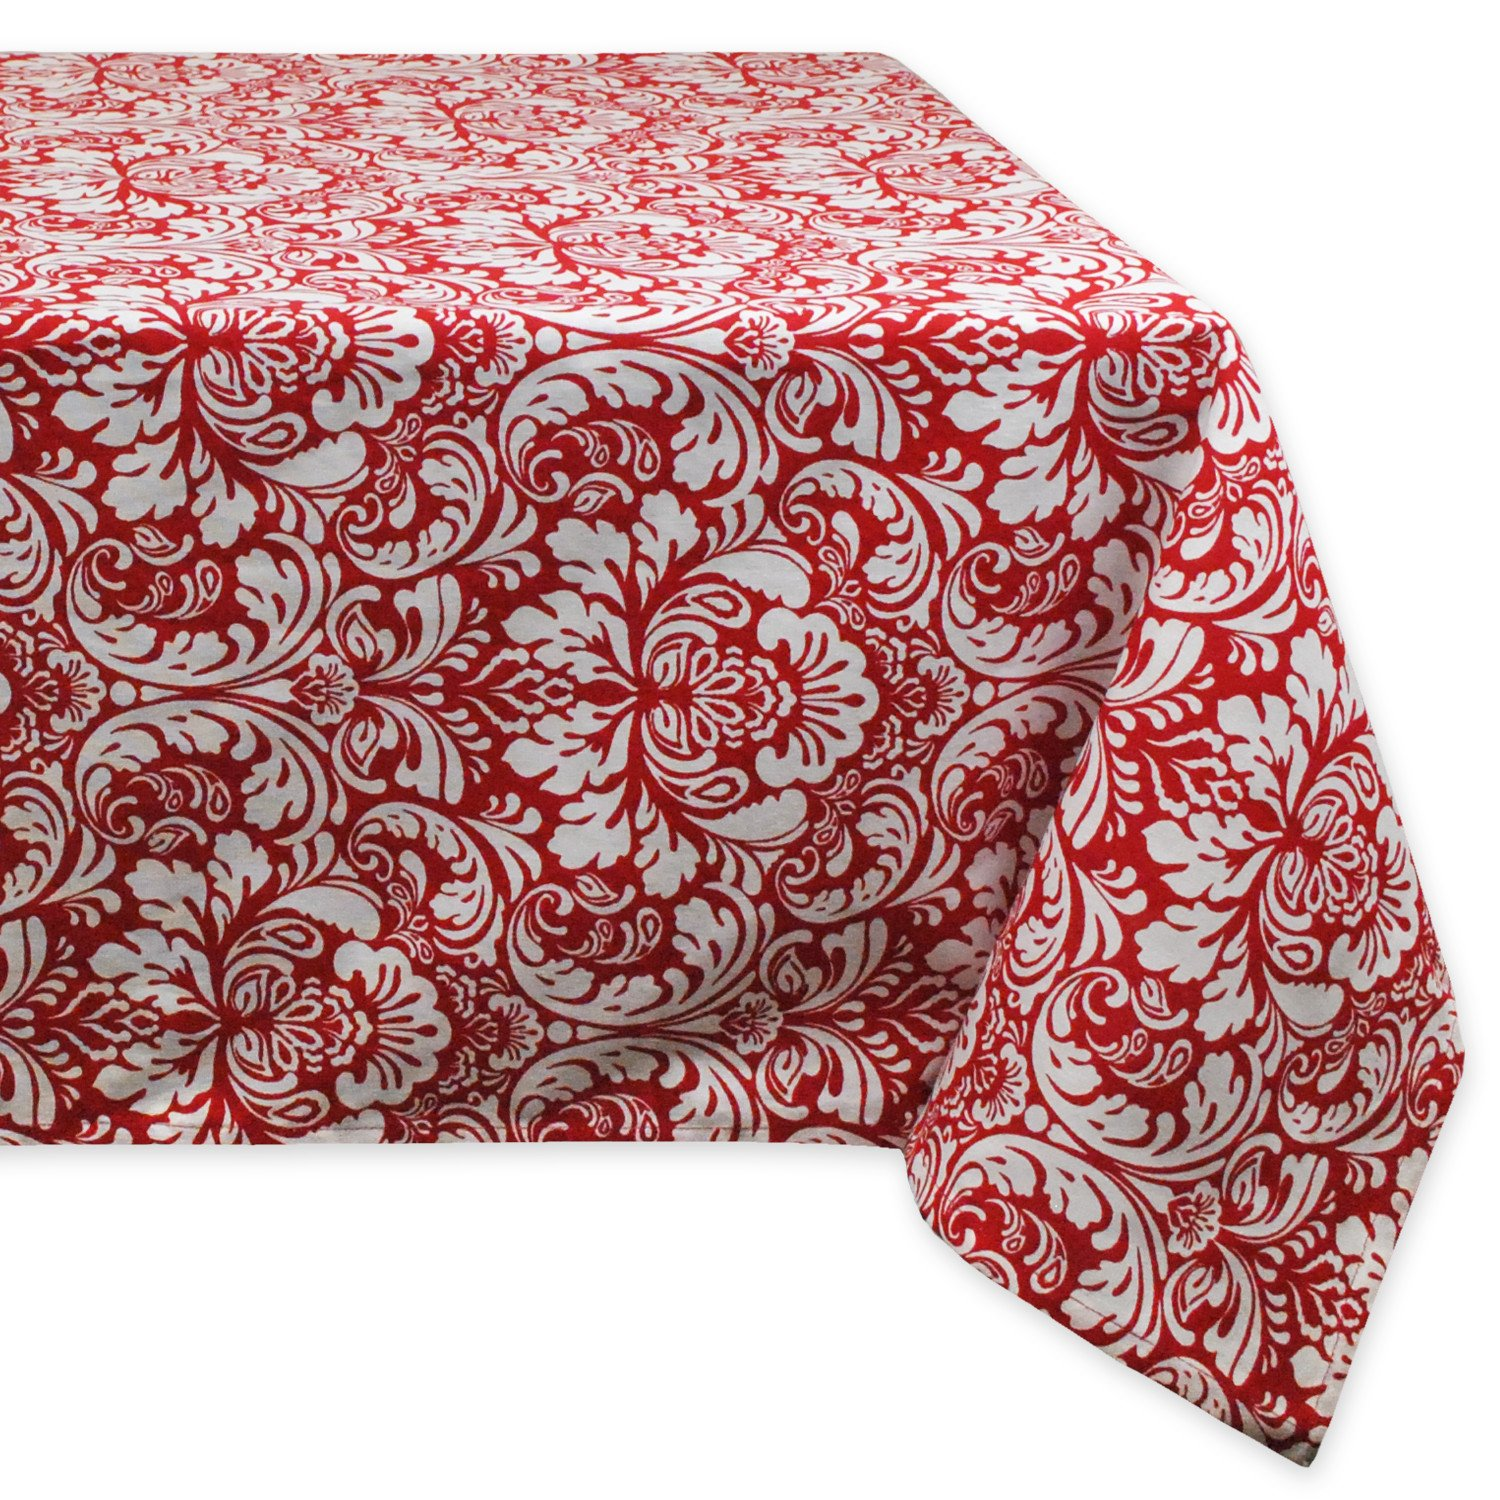 "DII 100% Cotton, Machine Washable, Everyday Damask Kitchen Tablecloth For Dinner Parties, Summer & Outdoor Picnics - 60x104"" Seats 8 to 10 People, Tango Red"